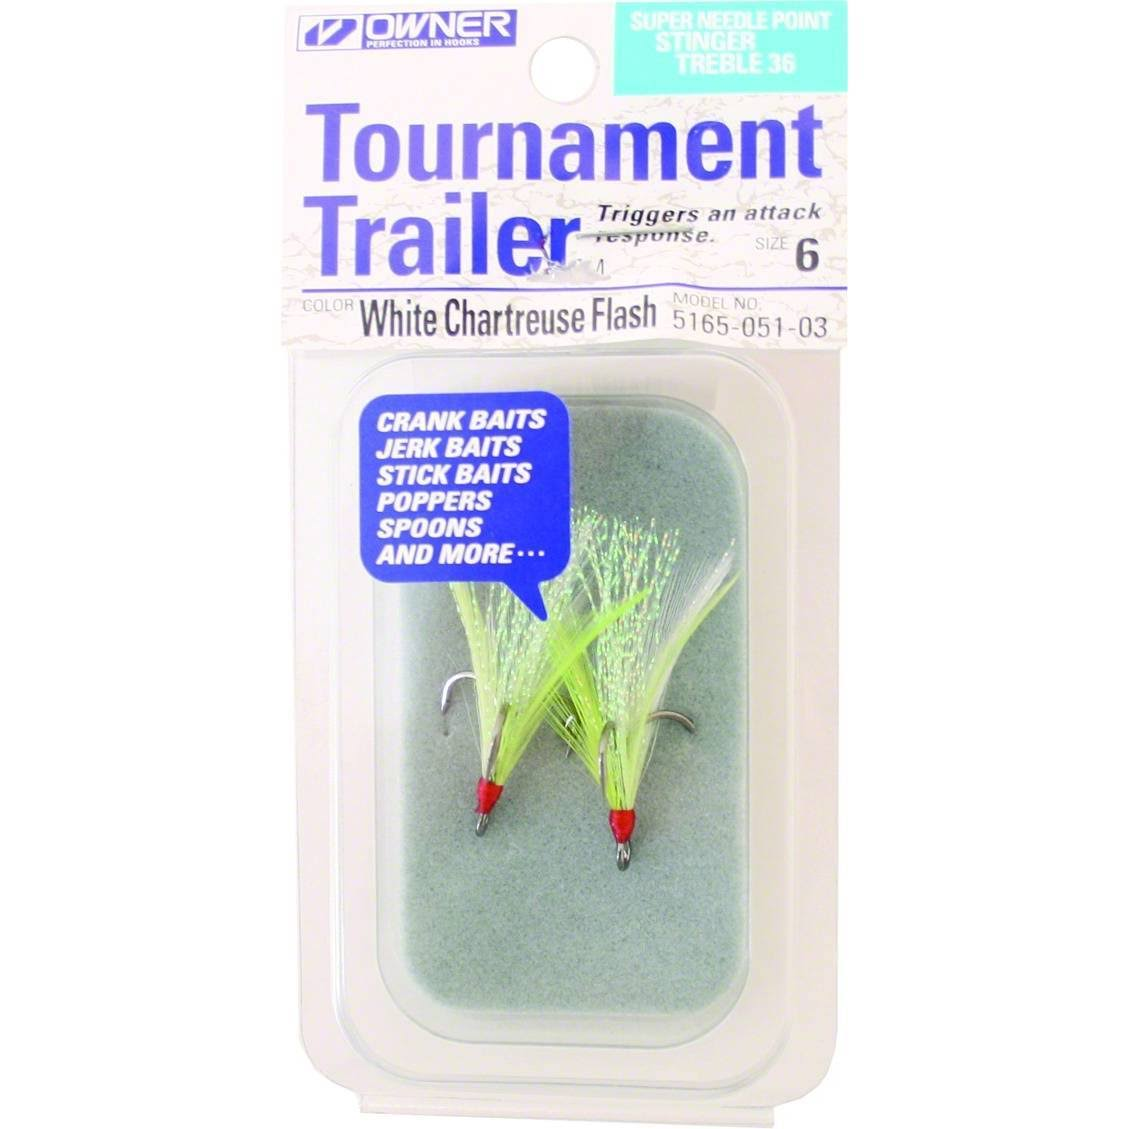 Owner 5165-051-03 Stinger-36 Tournament Trailer Treble Hook